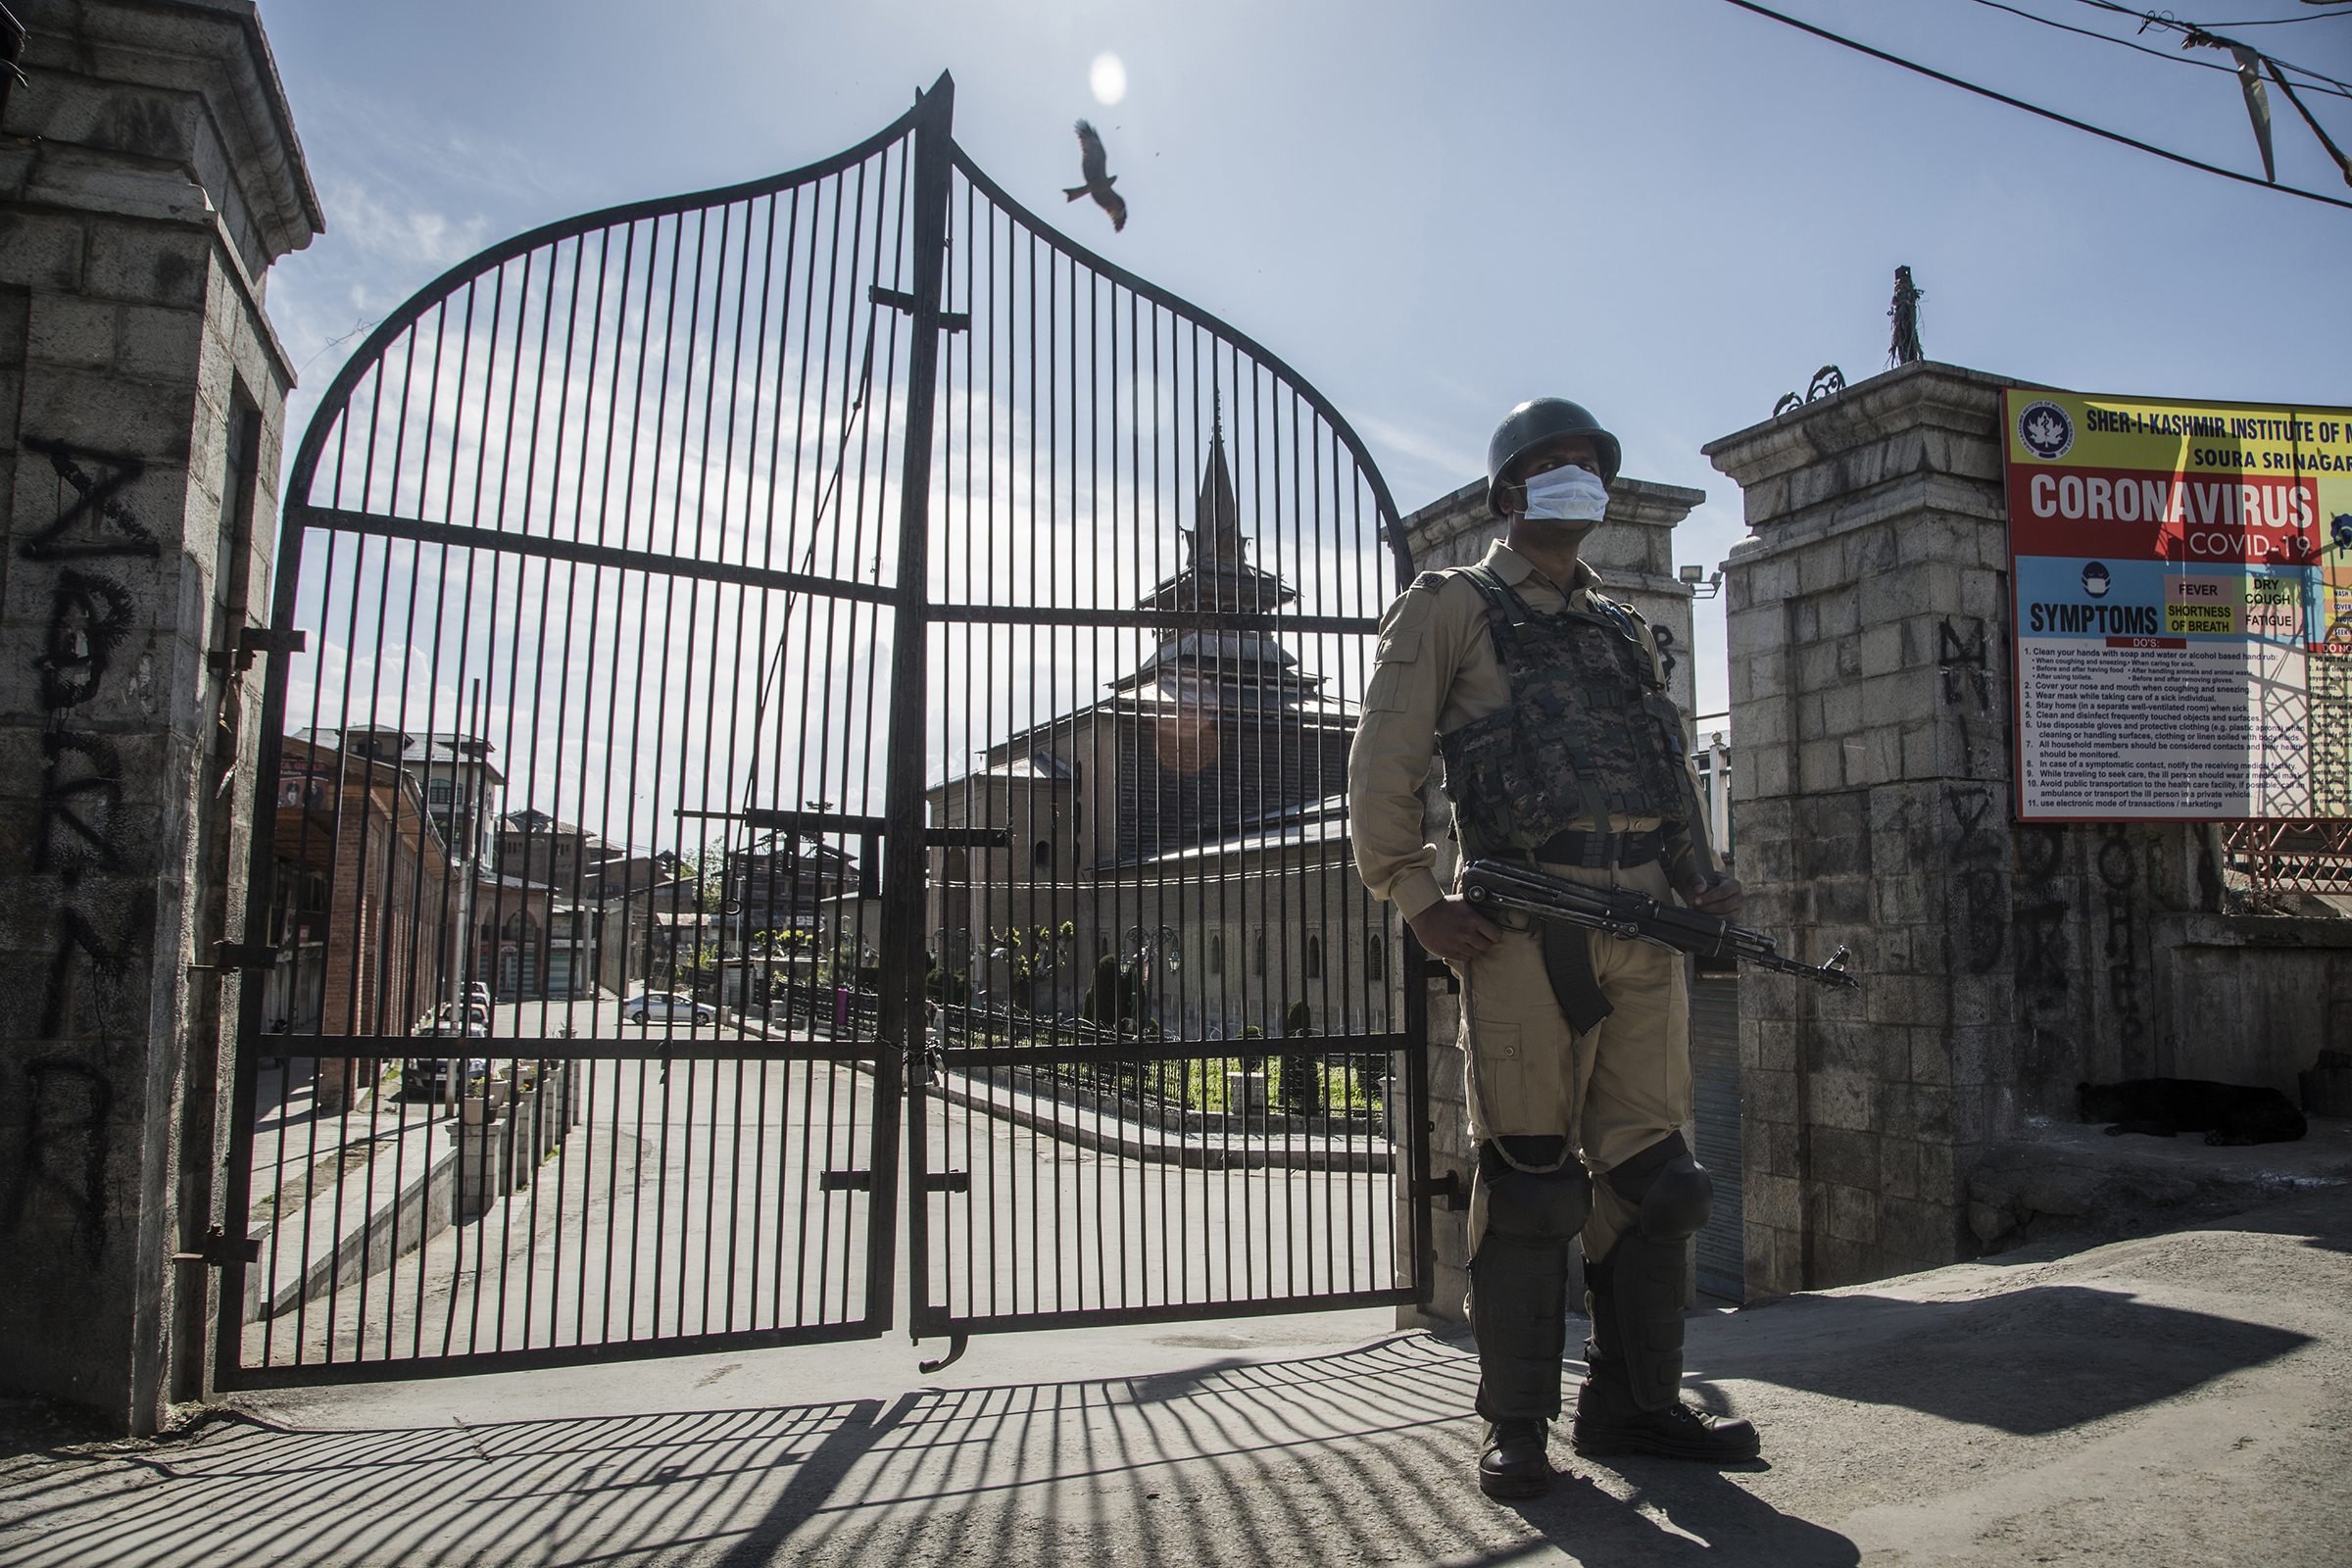 An Indian paramilitary soldier stands guard outside a deserted grand mosque Jamia Masjid, during the coronavirus (COVID-19) lockdown on April 24, 2020 in Srinagar, Kashmir.